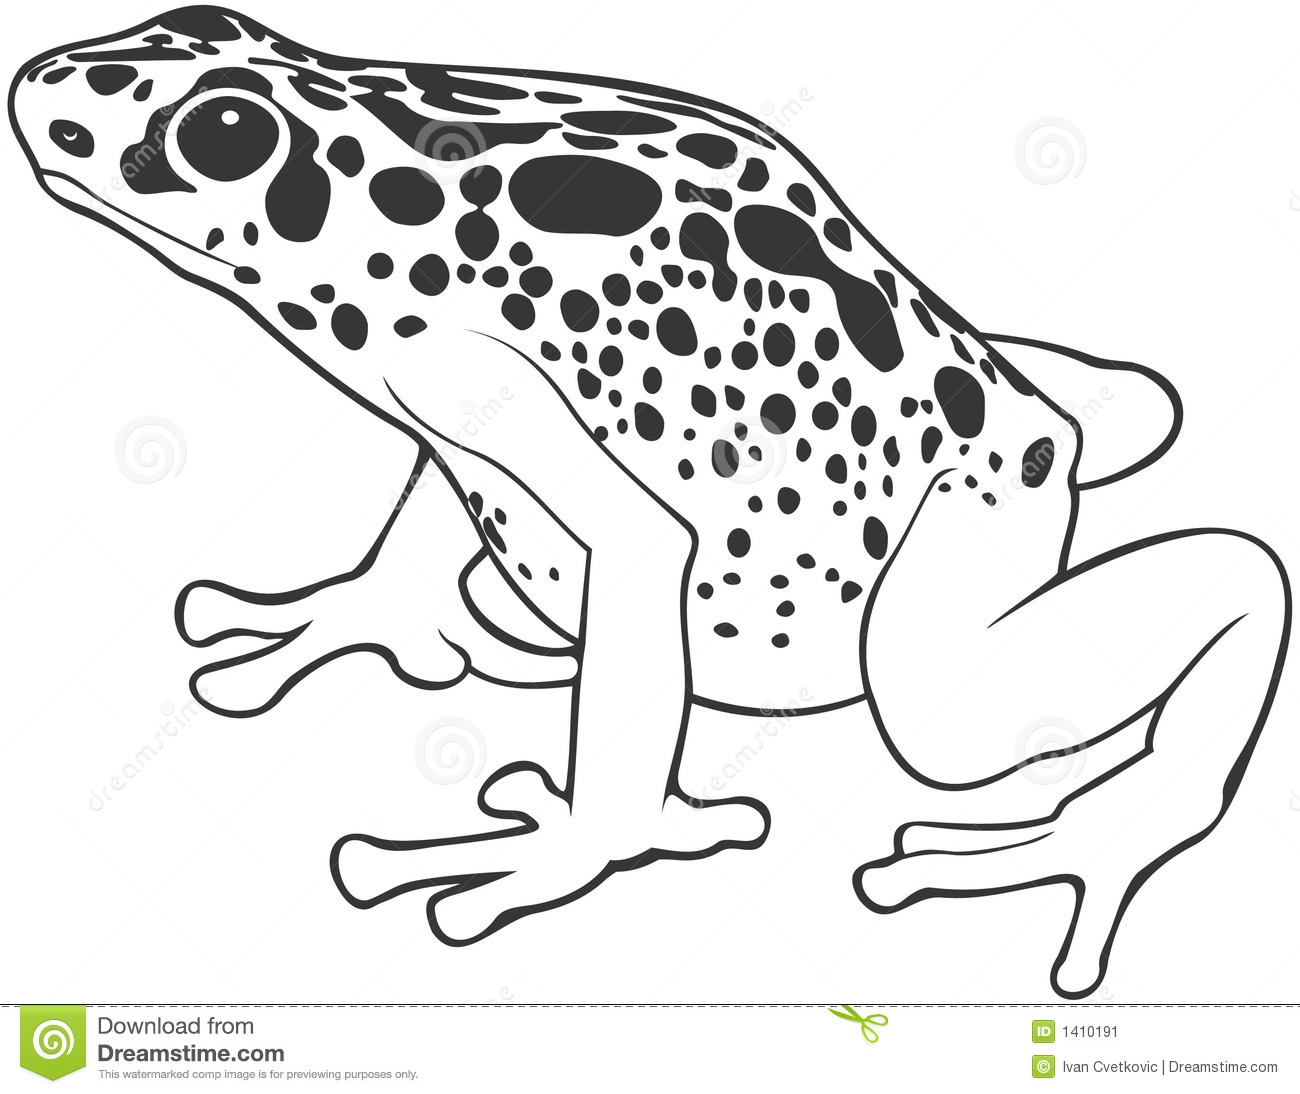 Frog Habitat Coloring Pages